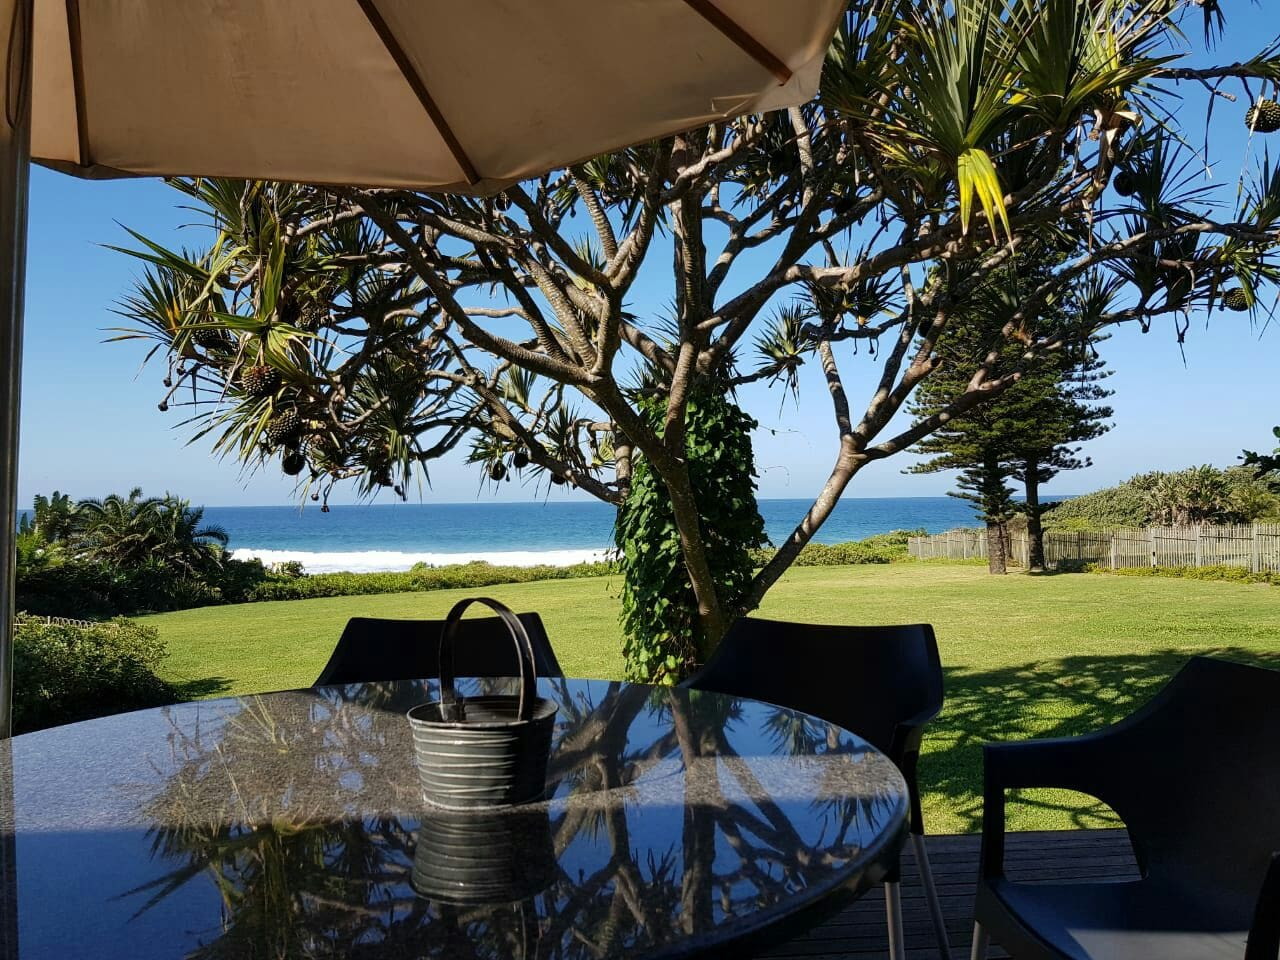 The view from the front verandah